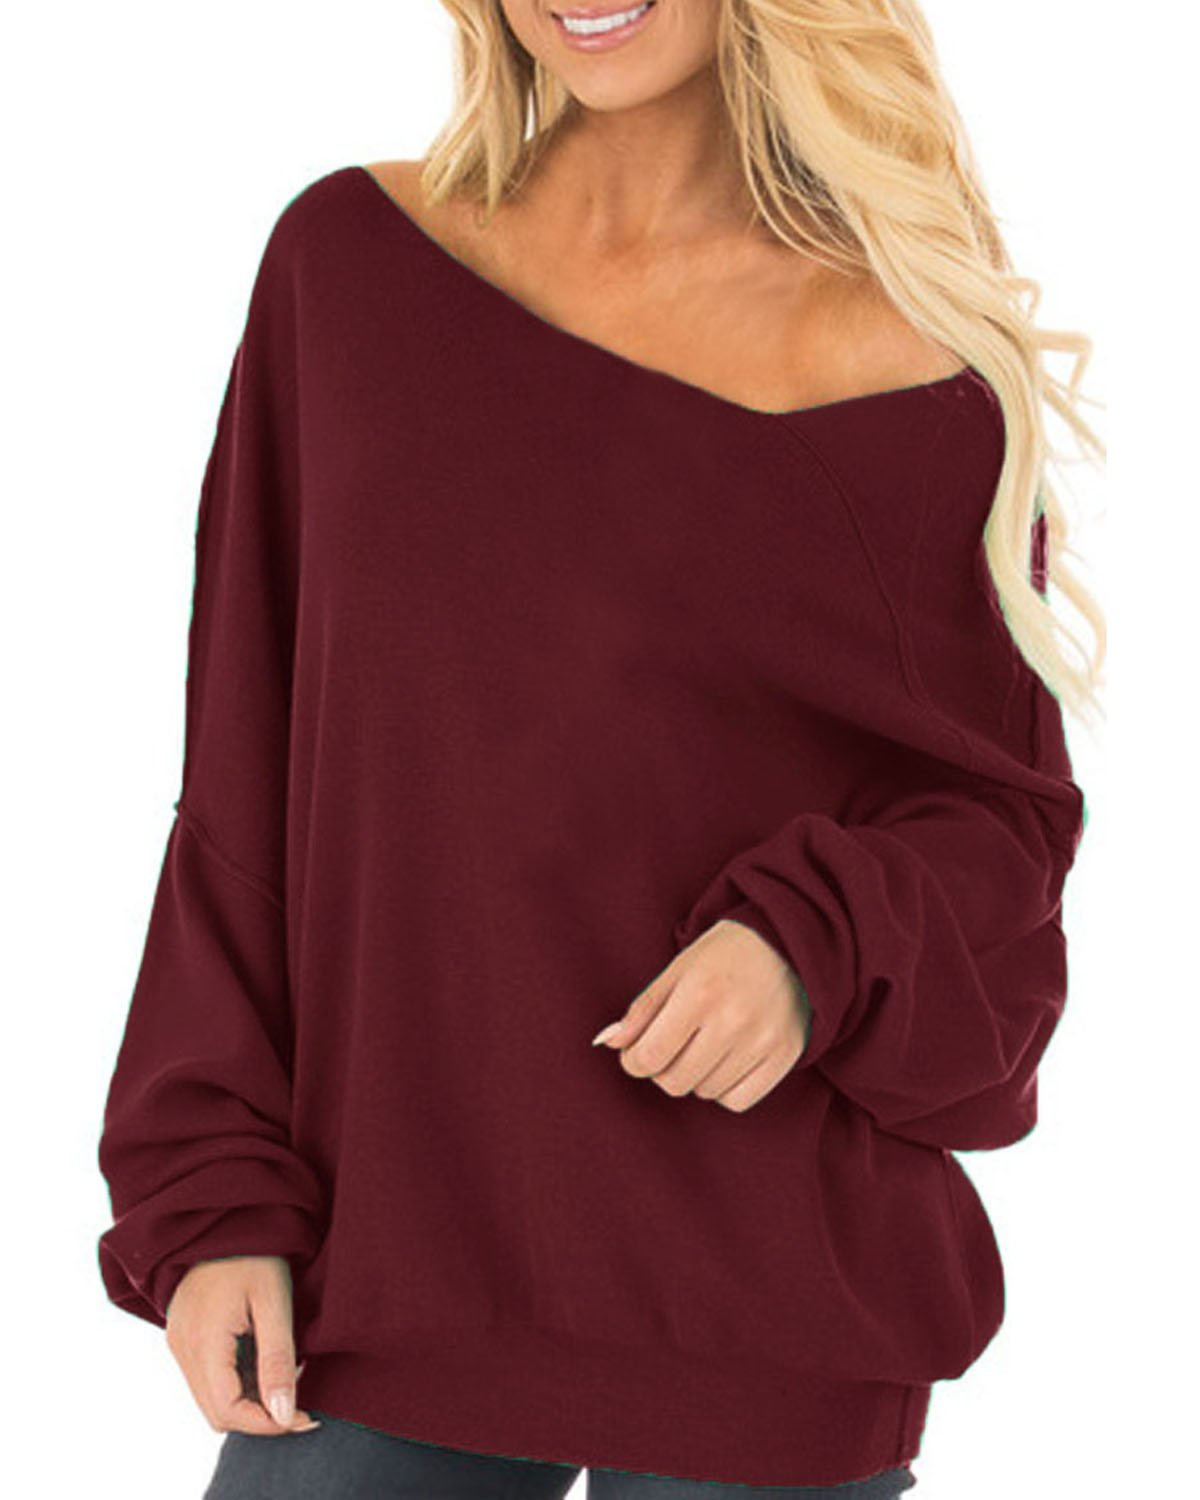 Auxo Women Baggy Jumper Off Shoulder Lantern Long Sleeve Batwing Blouse Casual Oversized Pullover Sweatshirt Tops